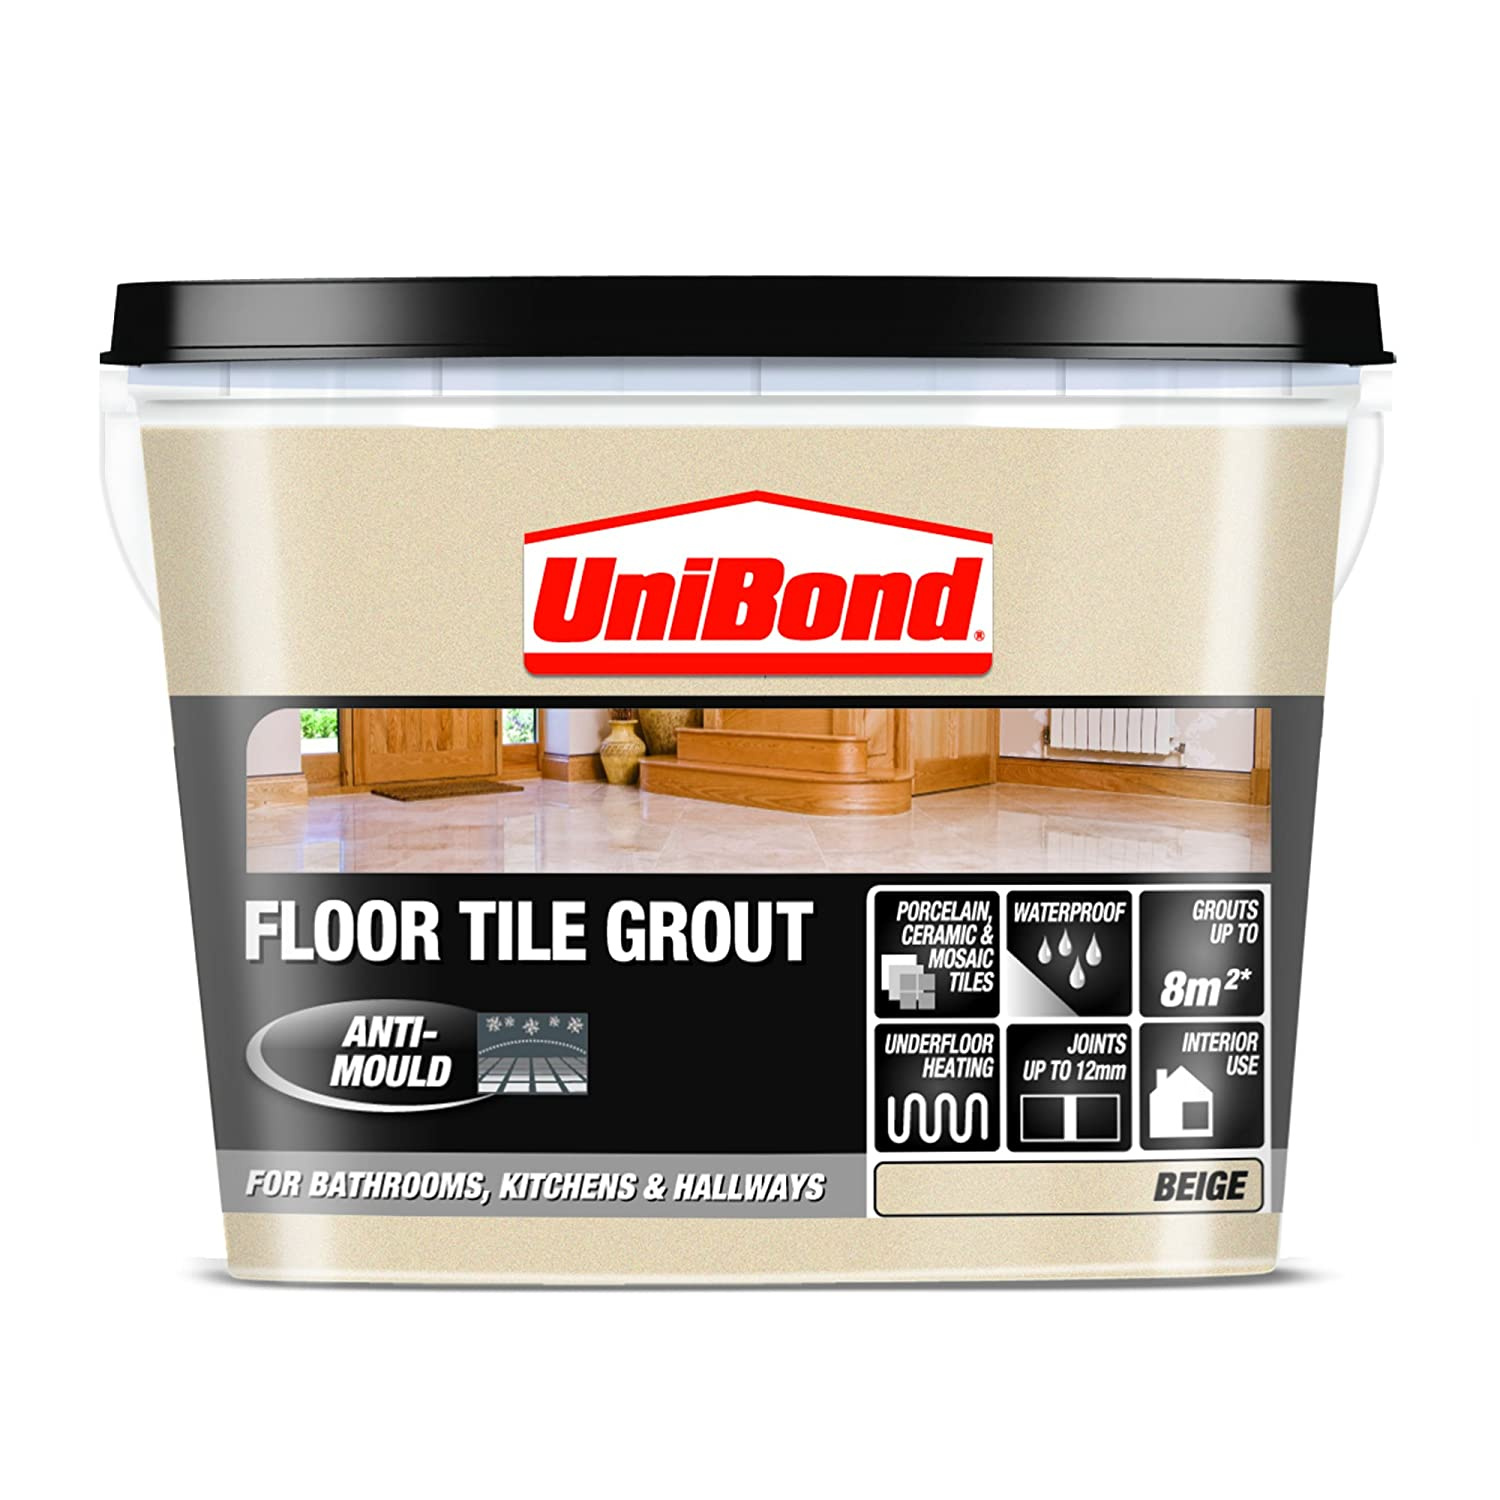 Unibond 1535346 wood floor tile adhesive and grout grey amazon unibond 1535346 wood floor tile adhesive and grout grey amazon diy tools dailygadgetfo Gallery